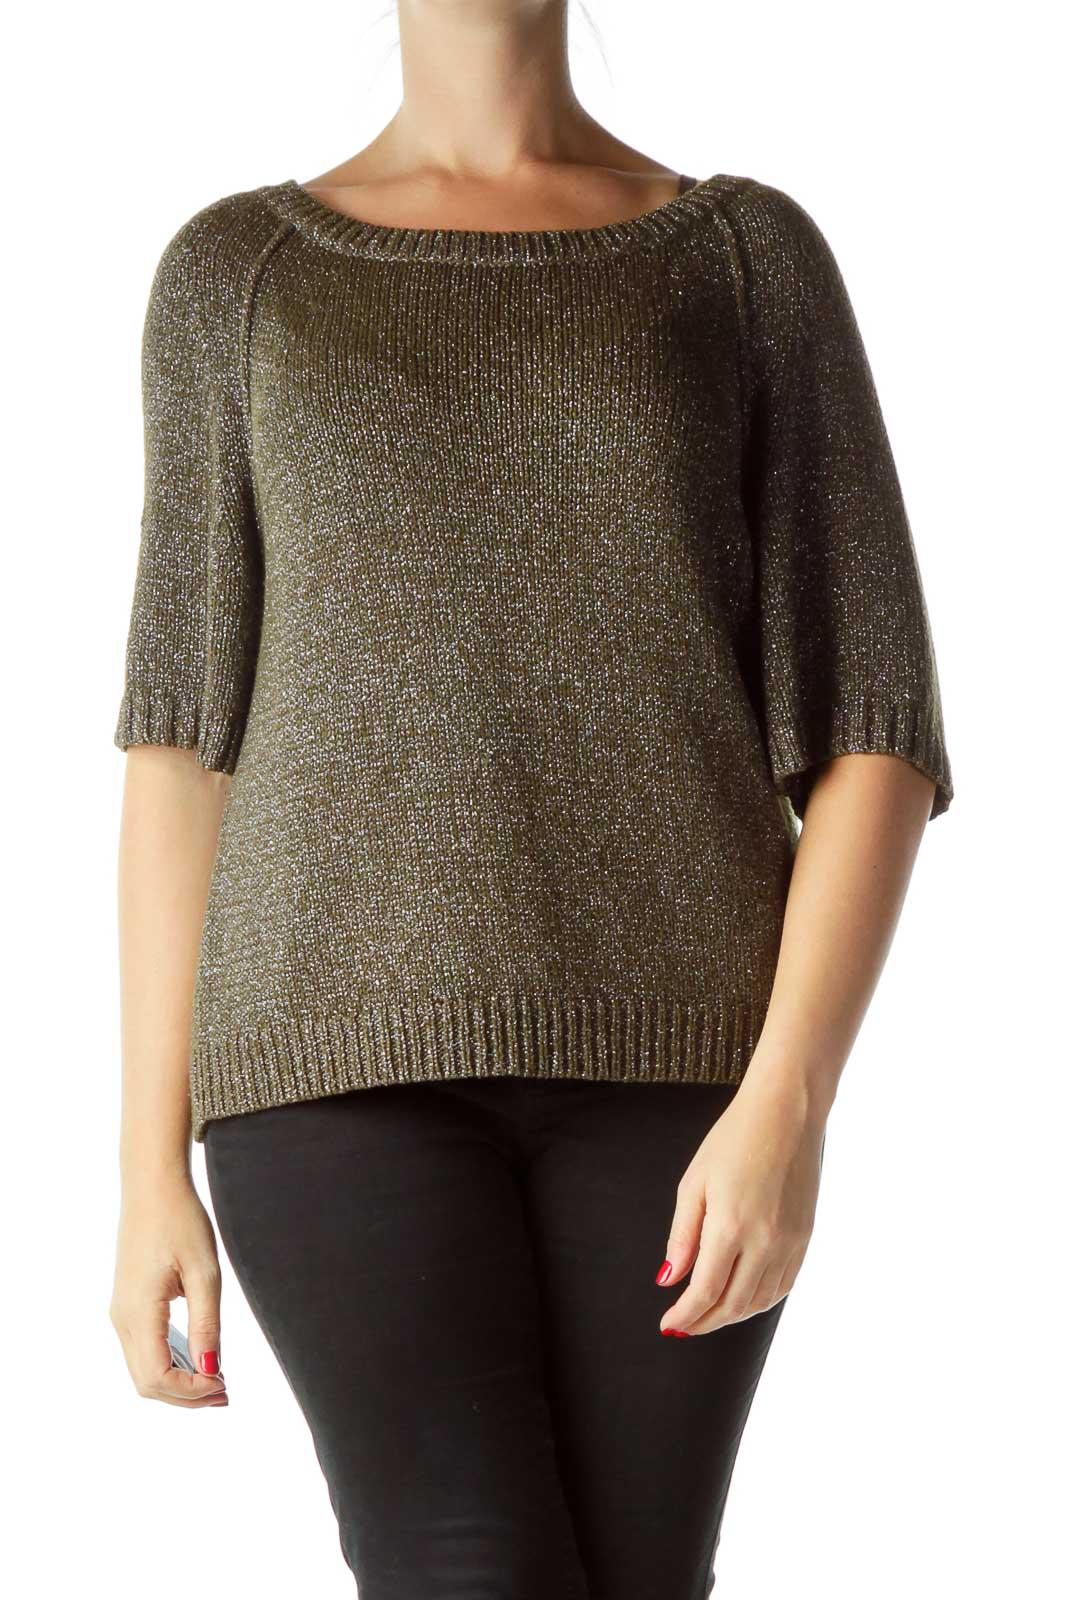 Gray Shimmery Loose Sweater